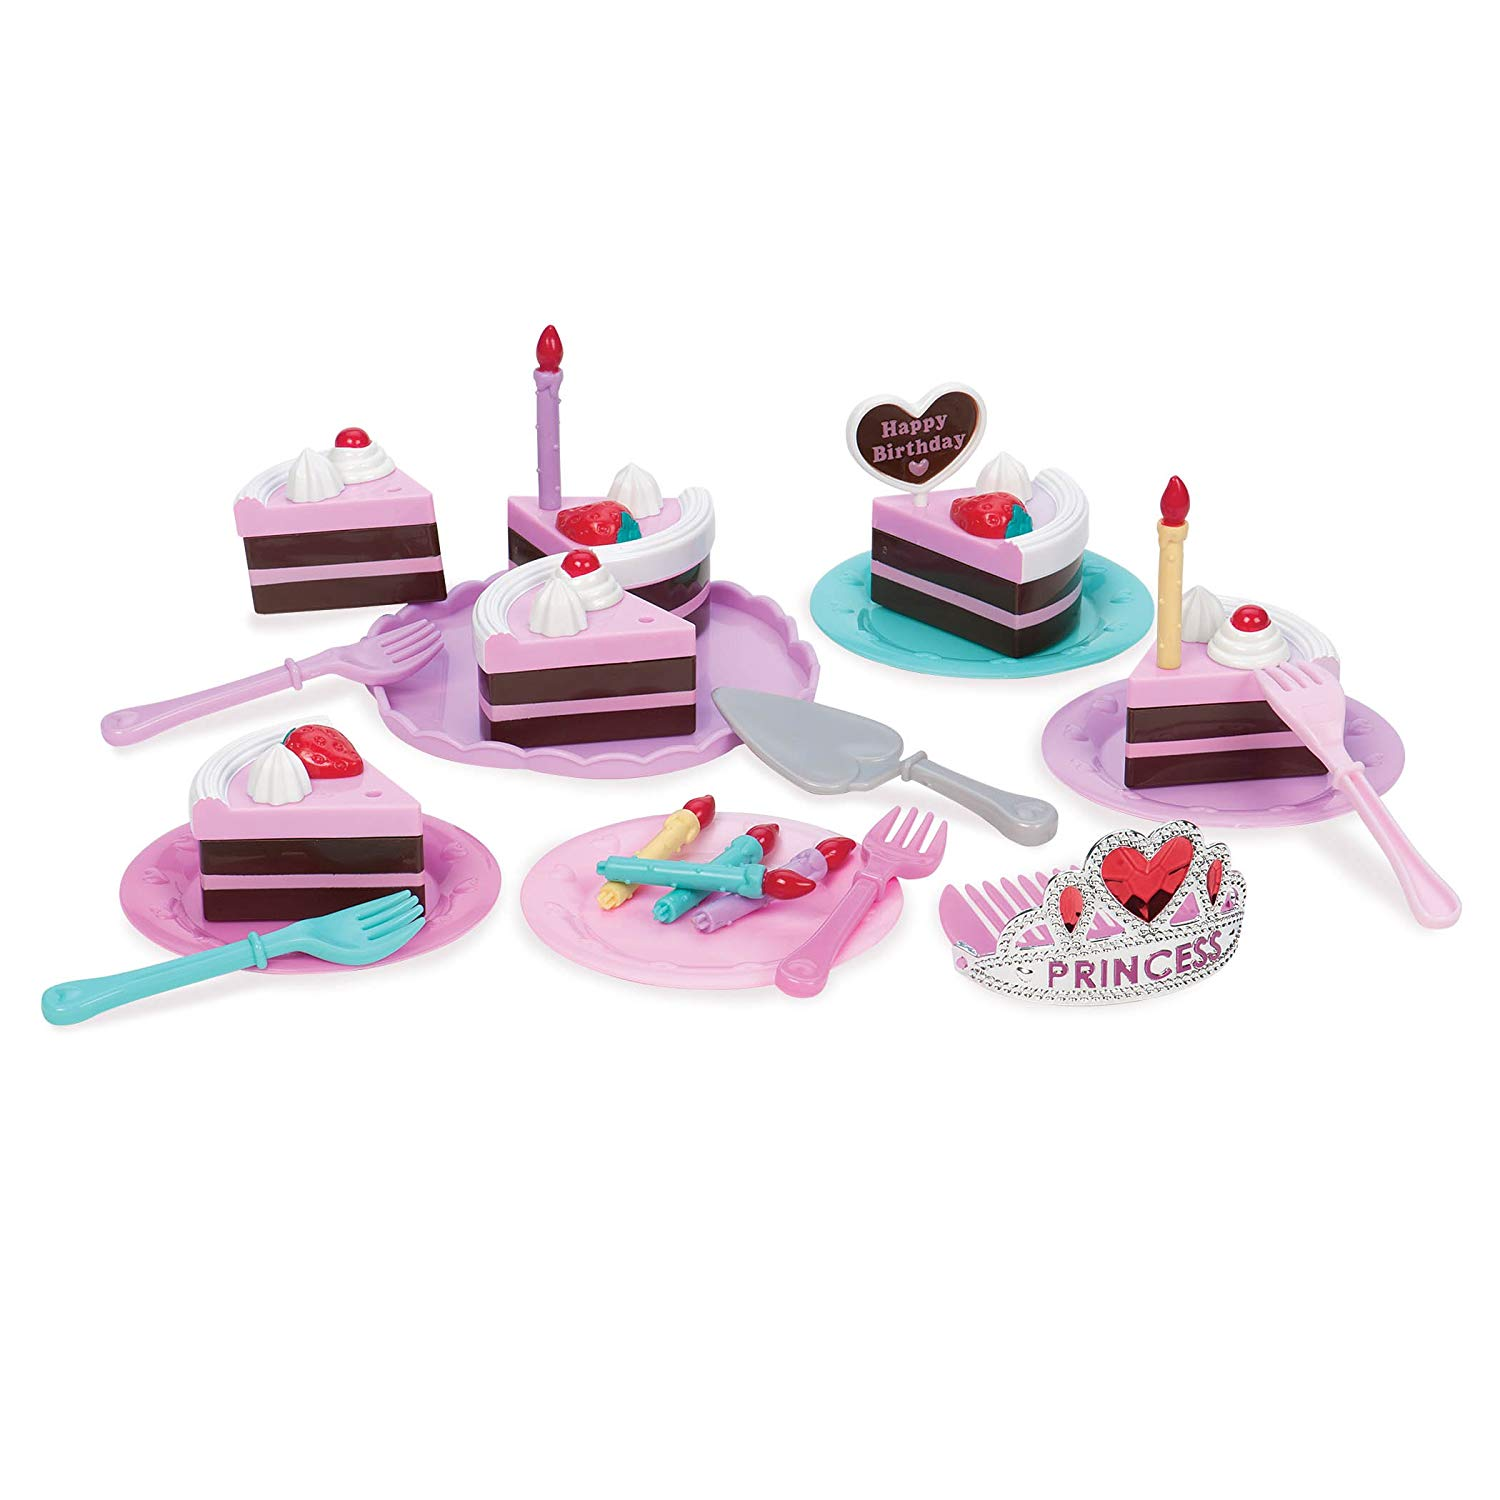 Play Circle by Battat – Princess Birthday Party – 24-Piece Pretend Play Birthday Cake with Candles, Dishes, and Princess Tiara – Play Food Sets for Toddlers Age 3 Years and Up